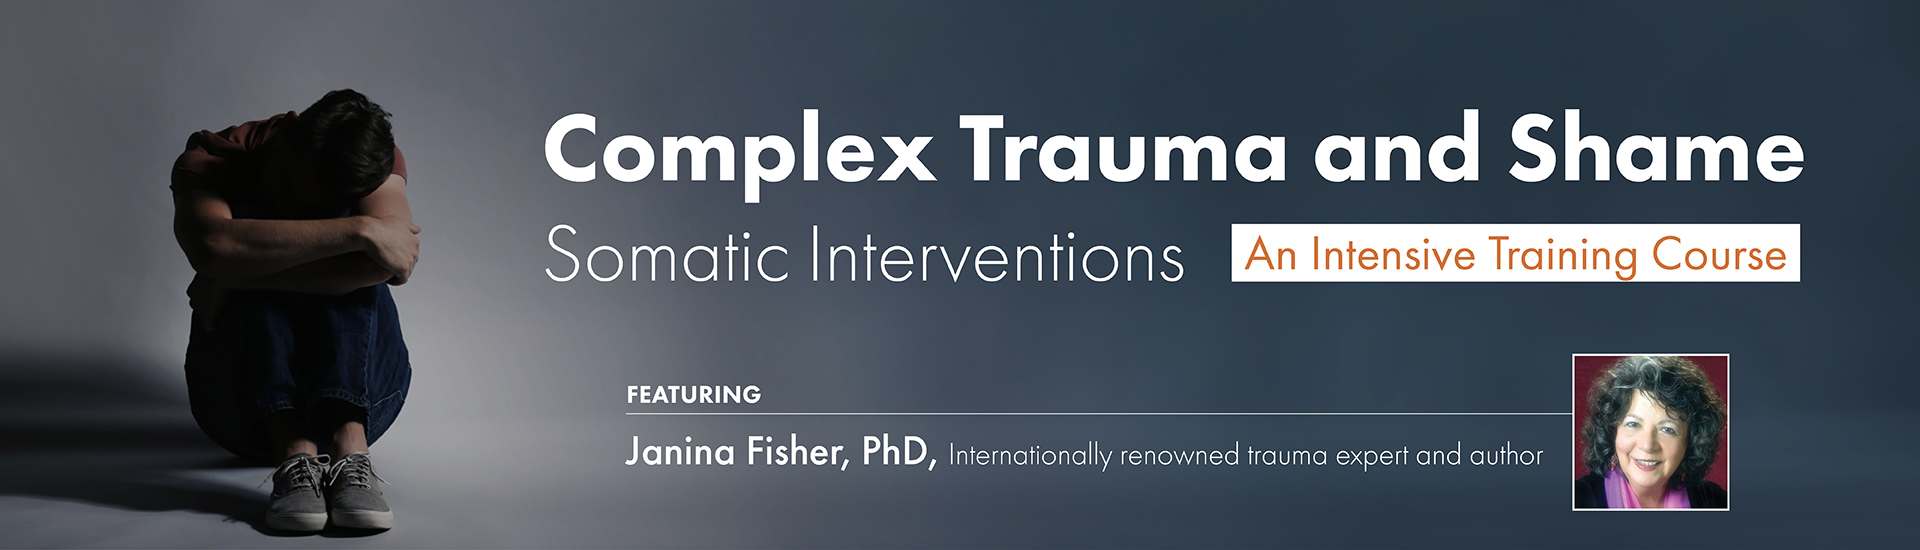 Complex Trauma and Shame with Janina Fisher